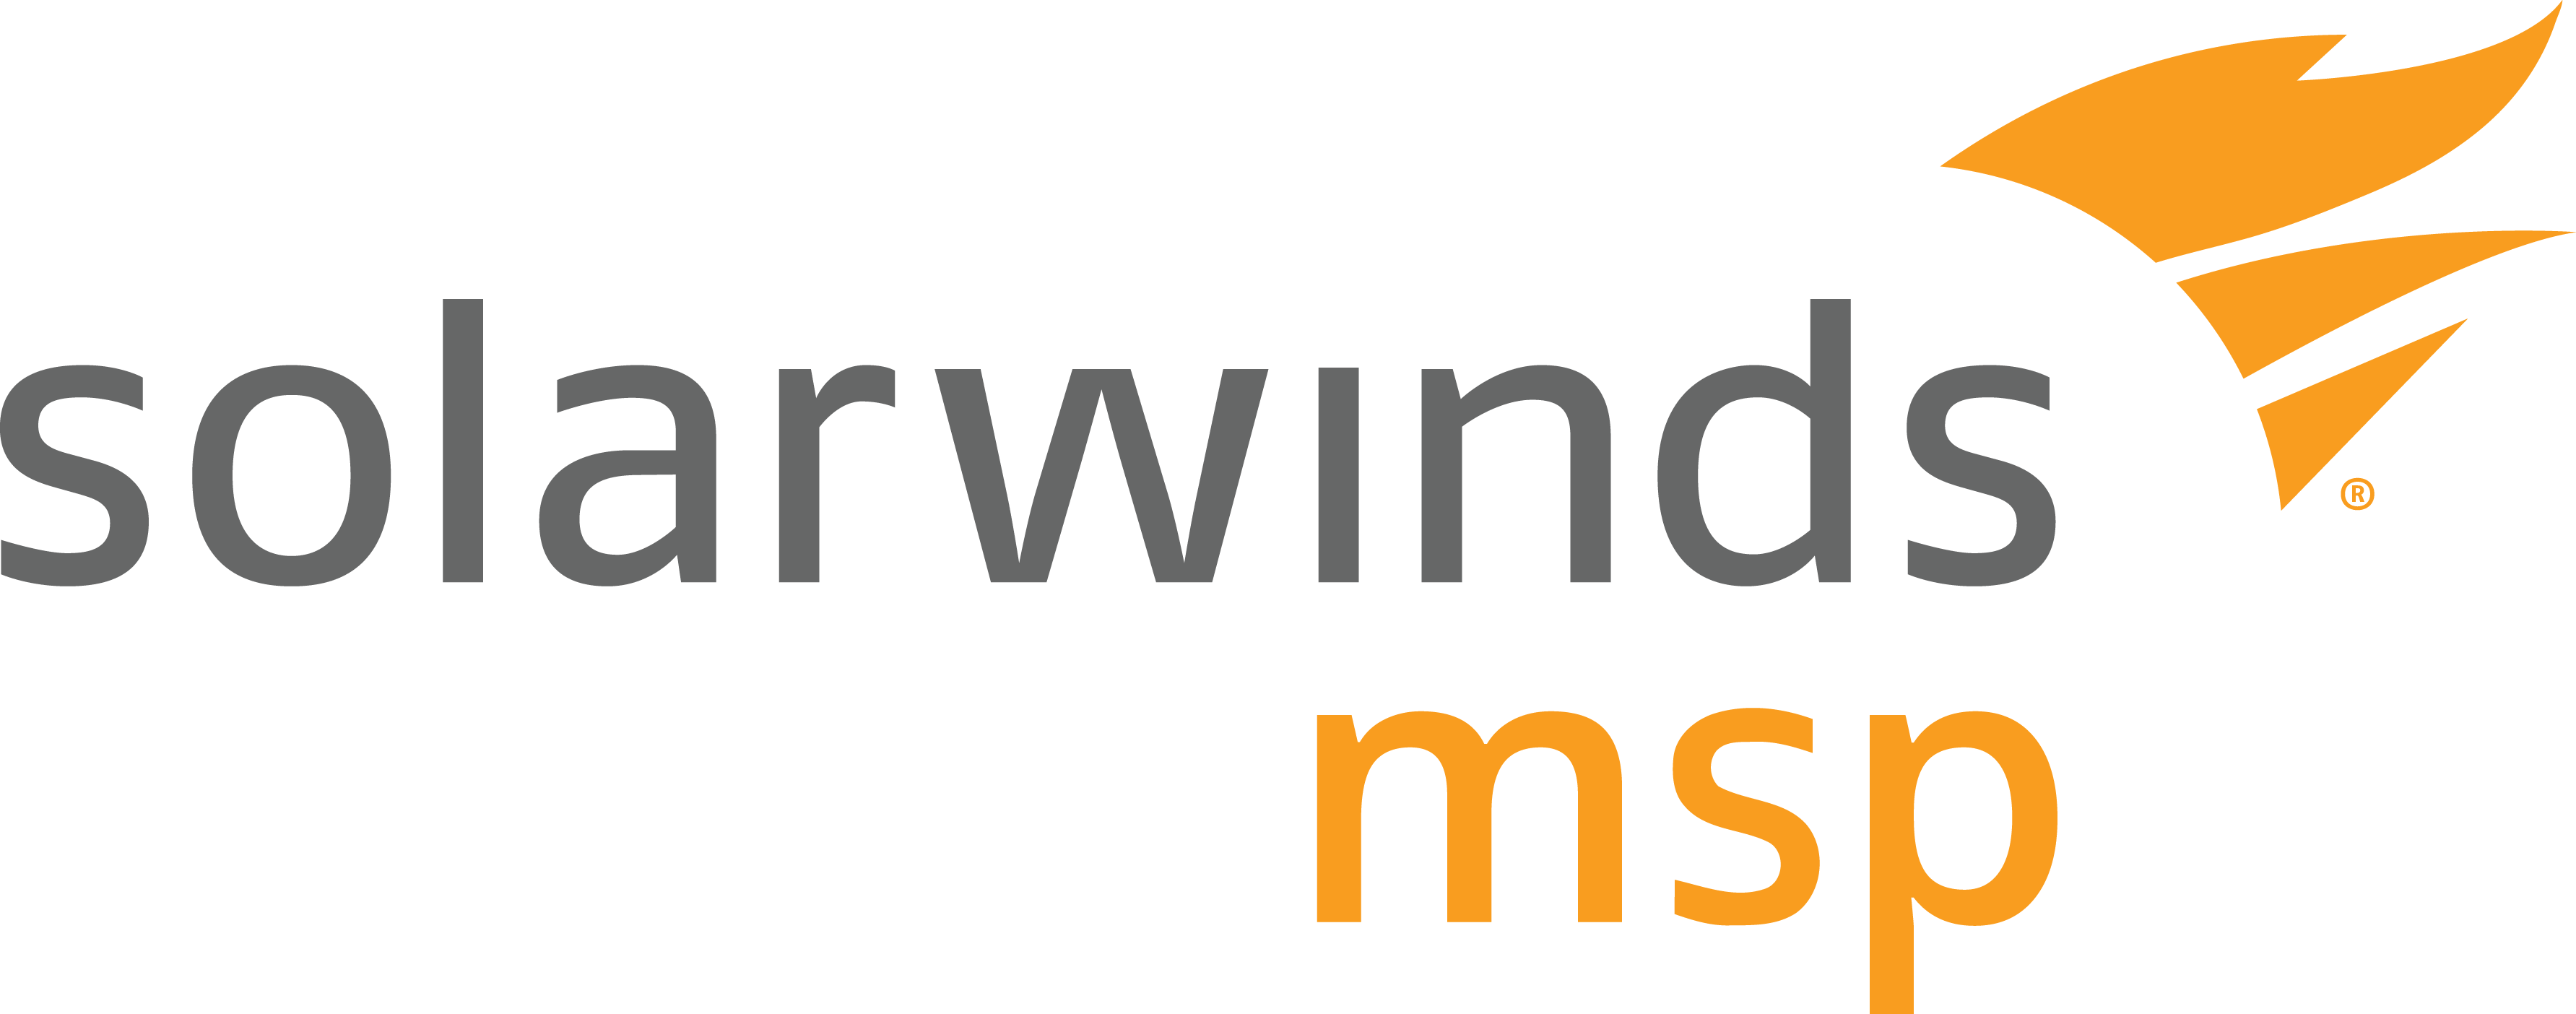 SolarWinds_MSP_Logo_Full_Colour (1).png